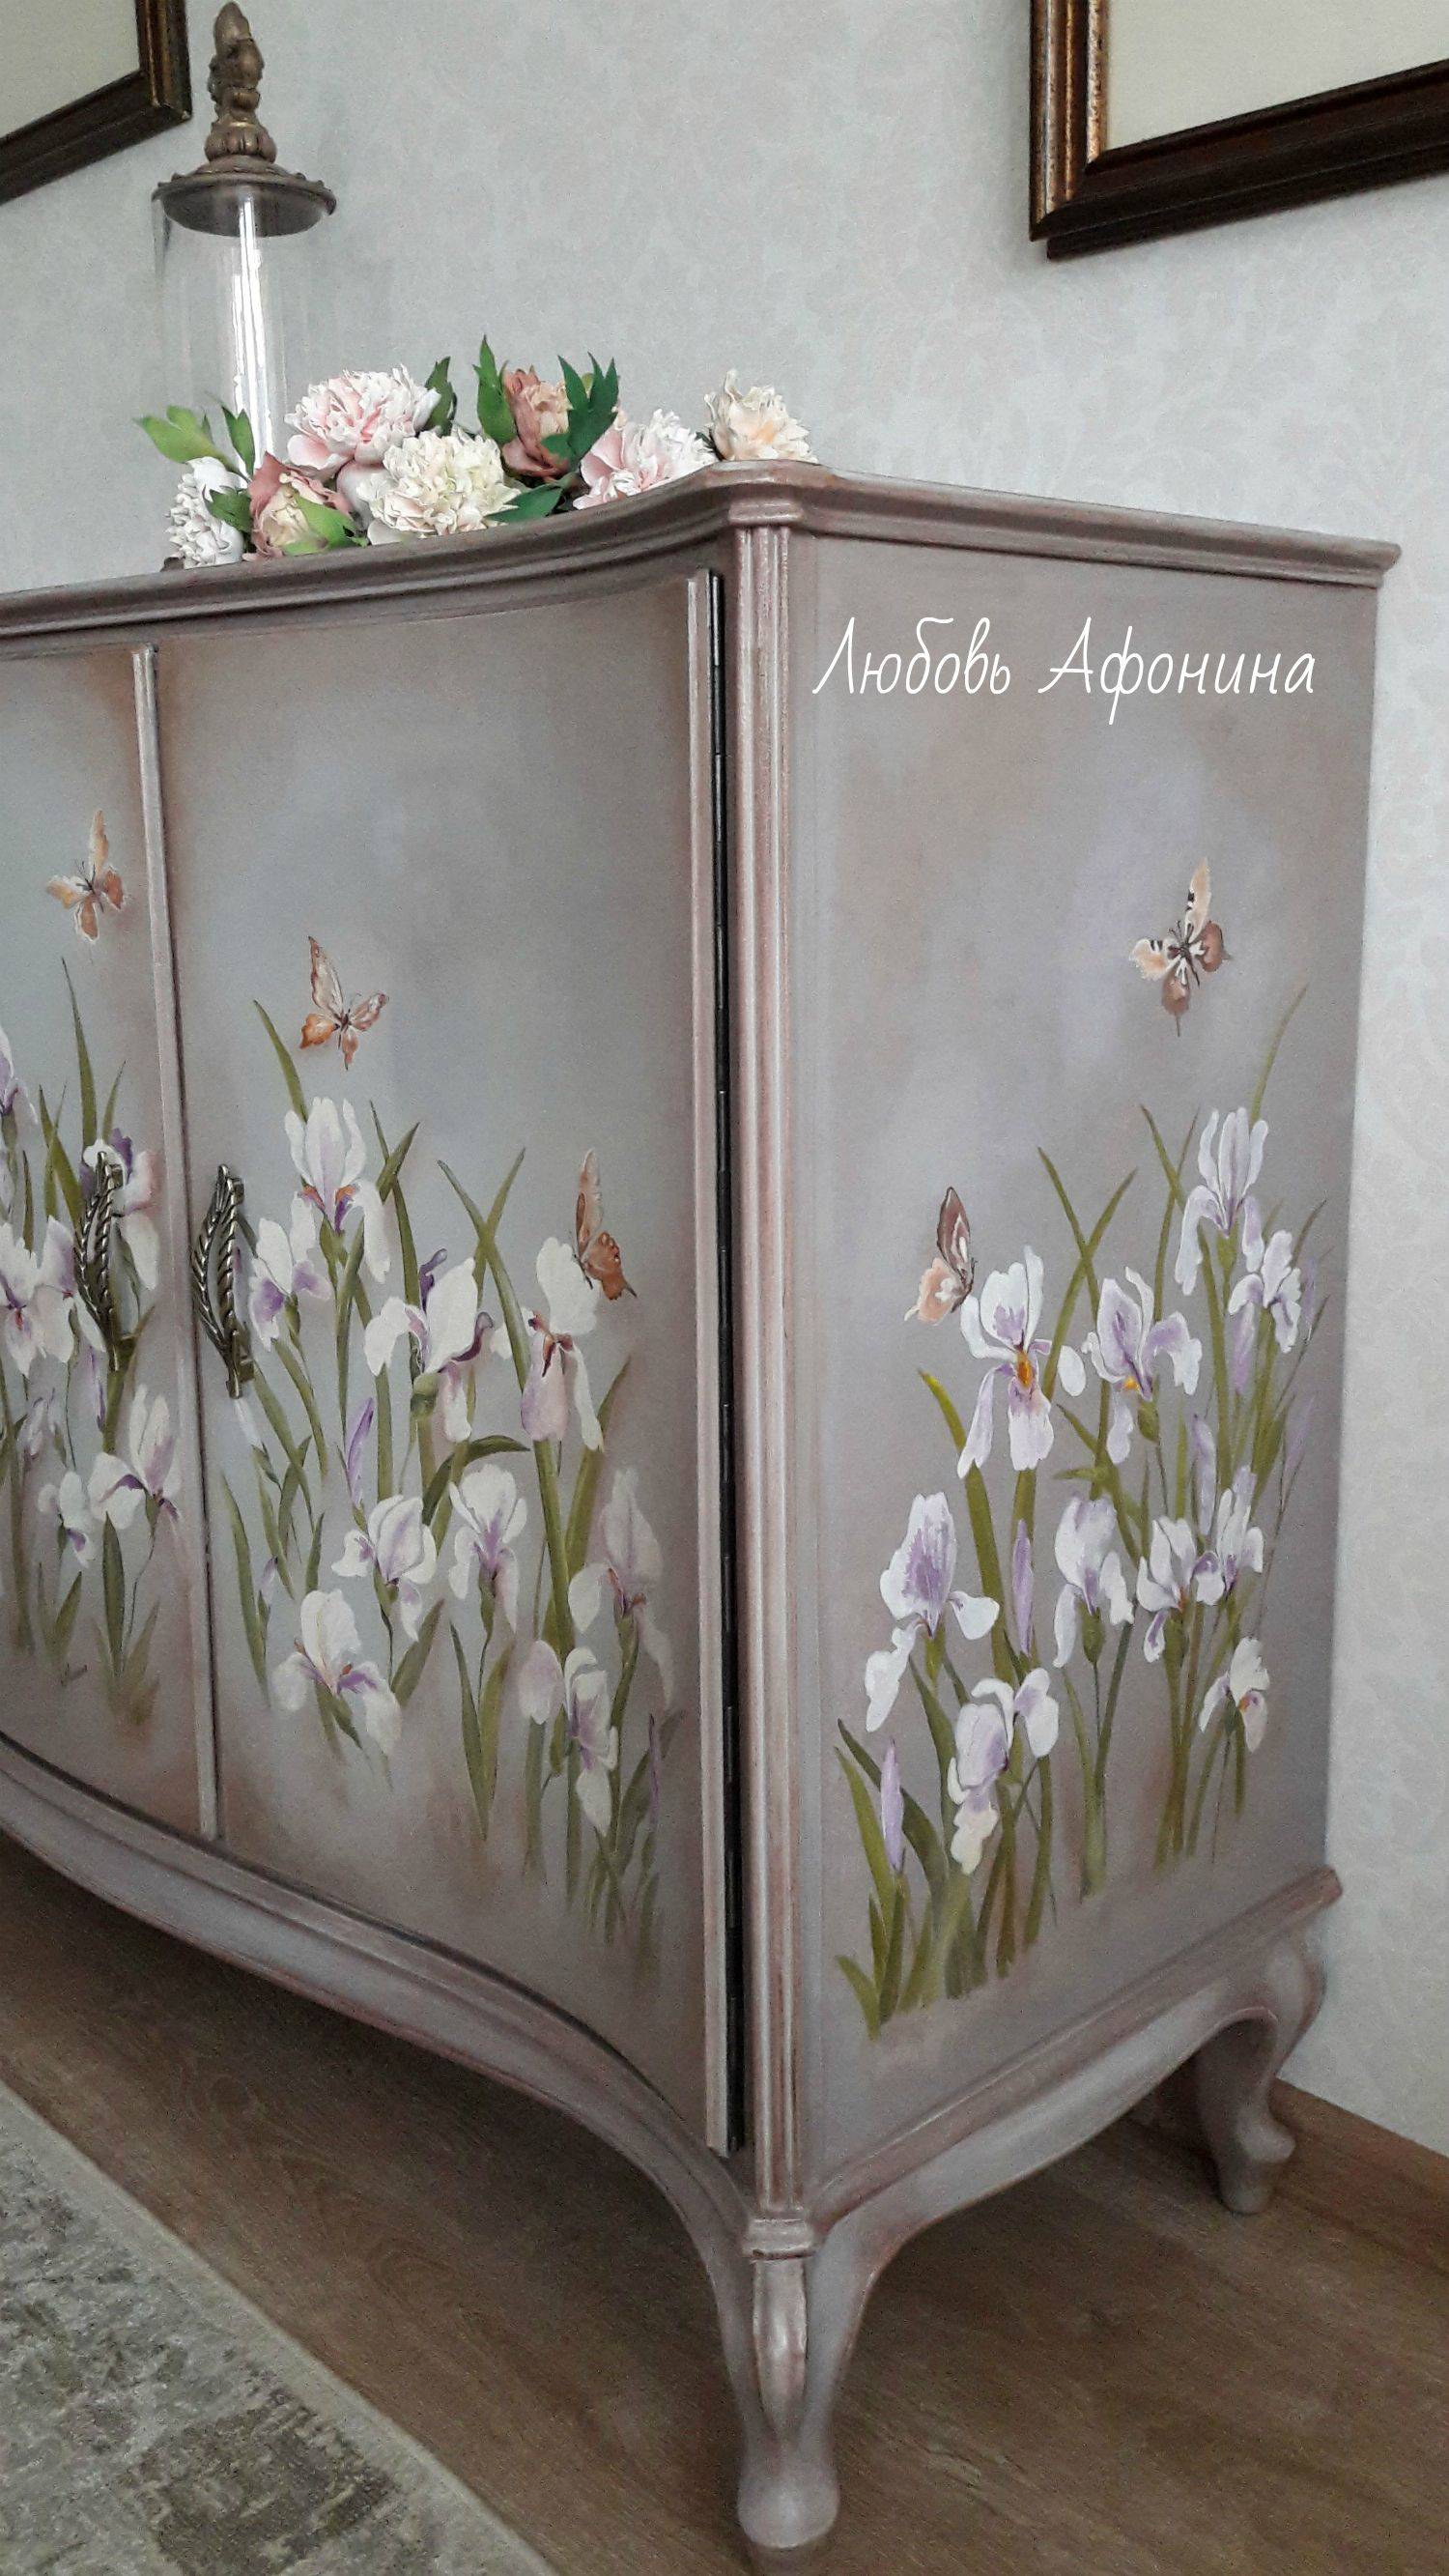 Pin de Virge en Romantic | Pinterest | Pintar, Cómodas y Muebles ...